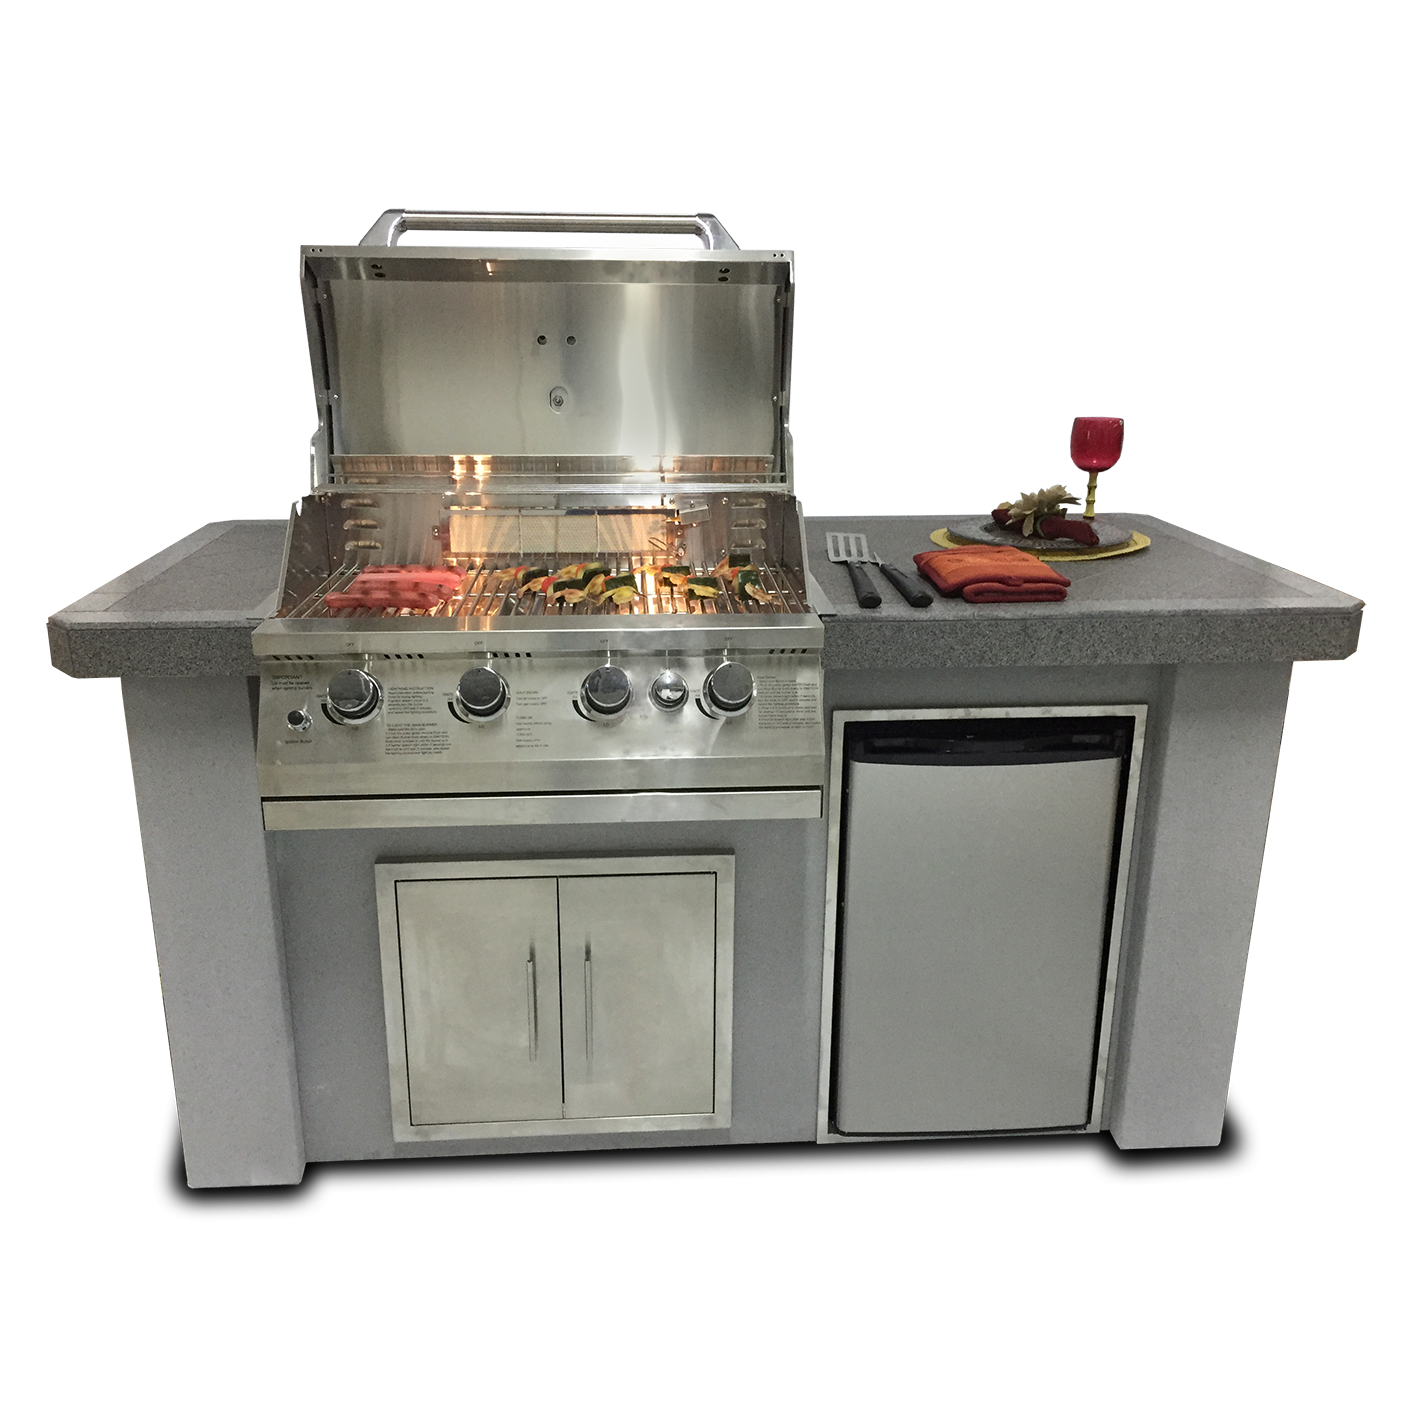 Biscayne Series Stucco/Tile Outdoor Kitchen Island    MSRP Pricing: $6171